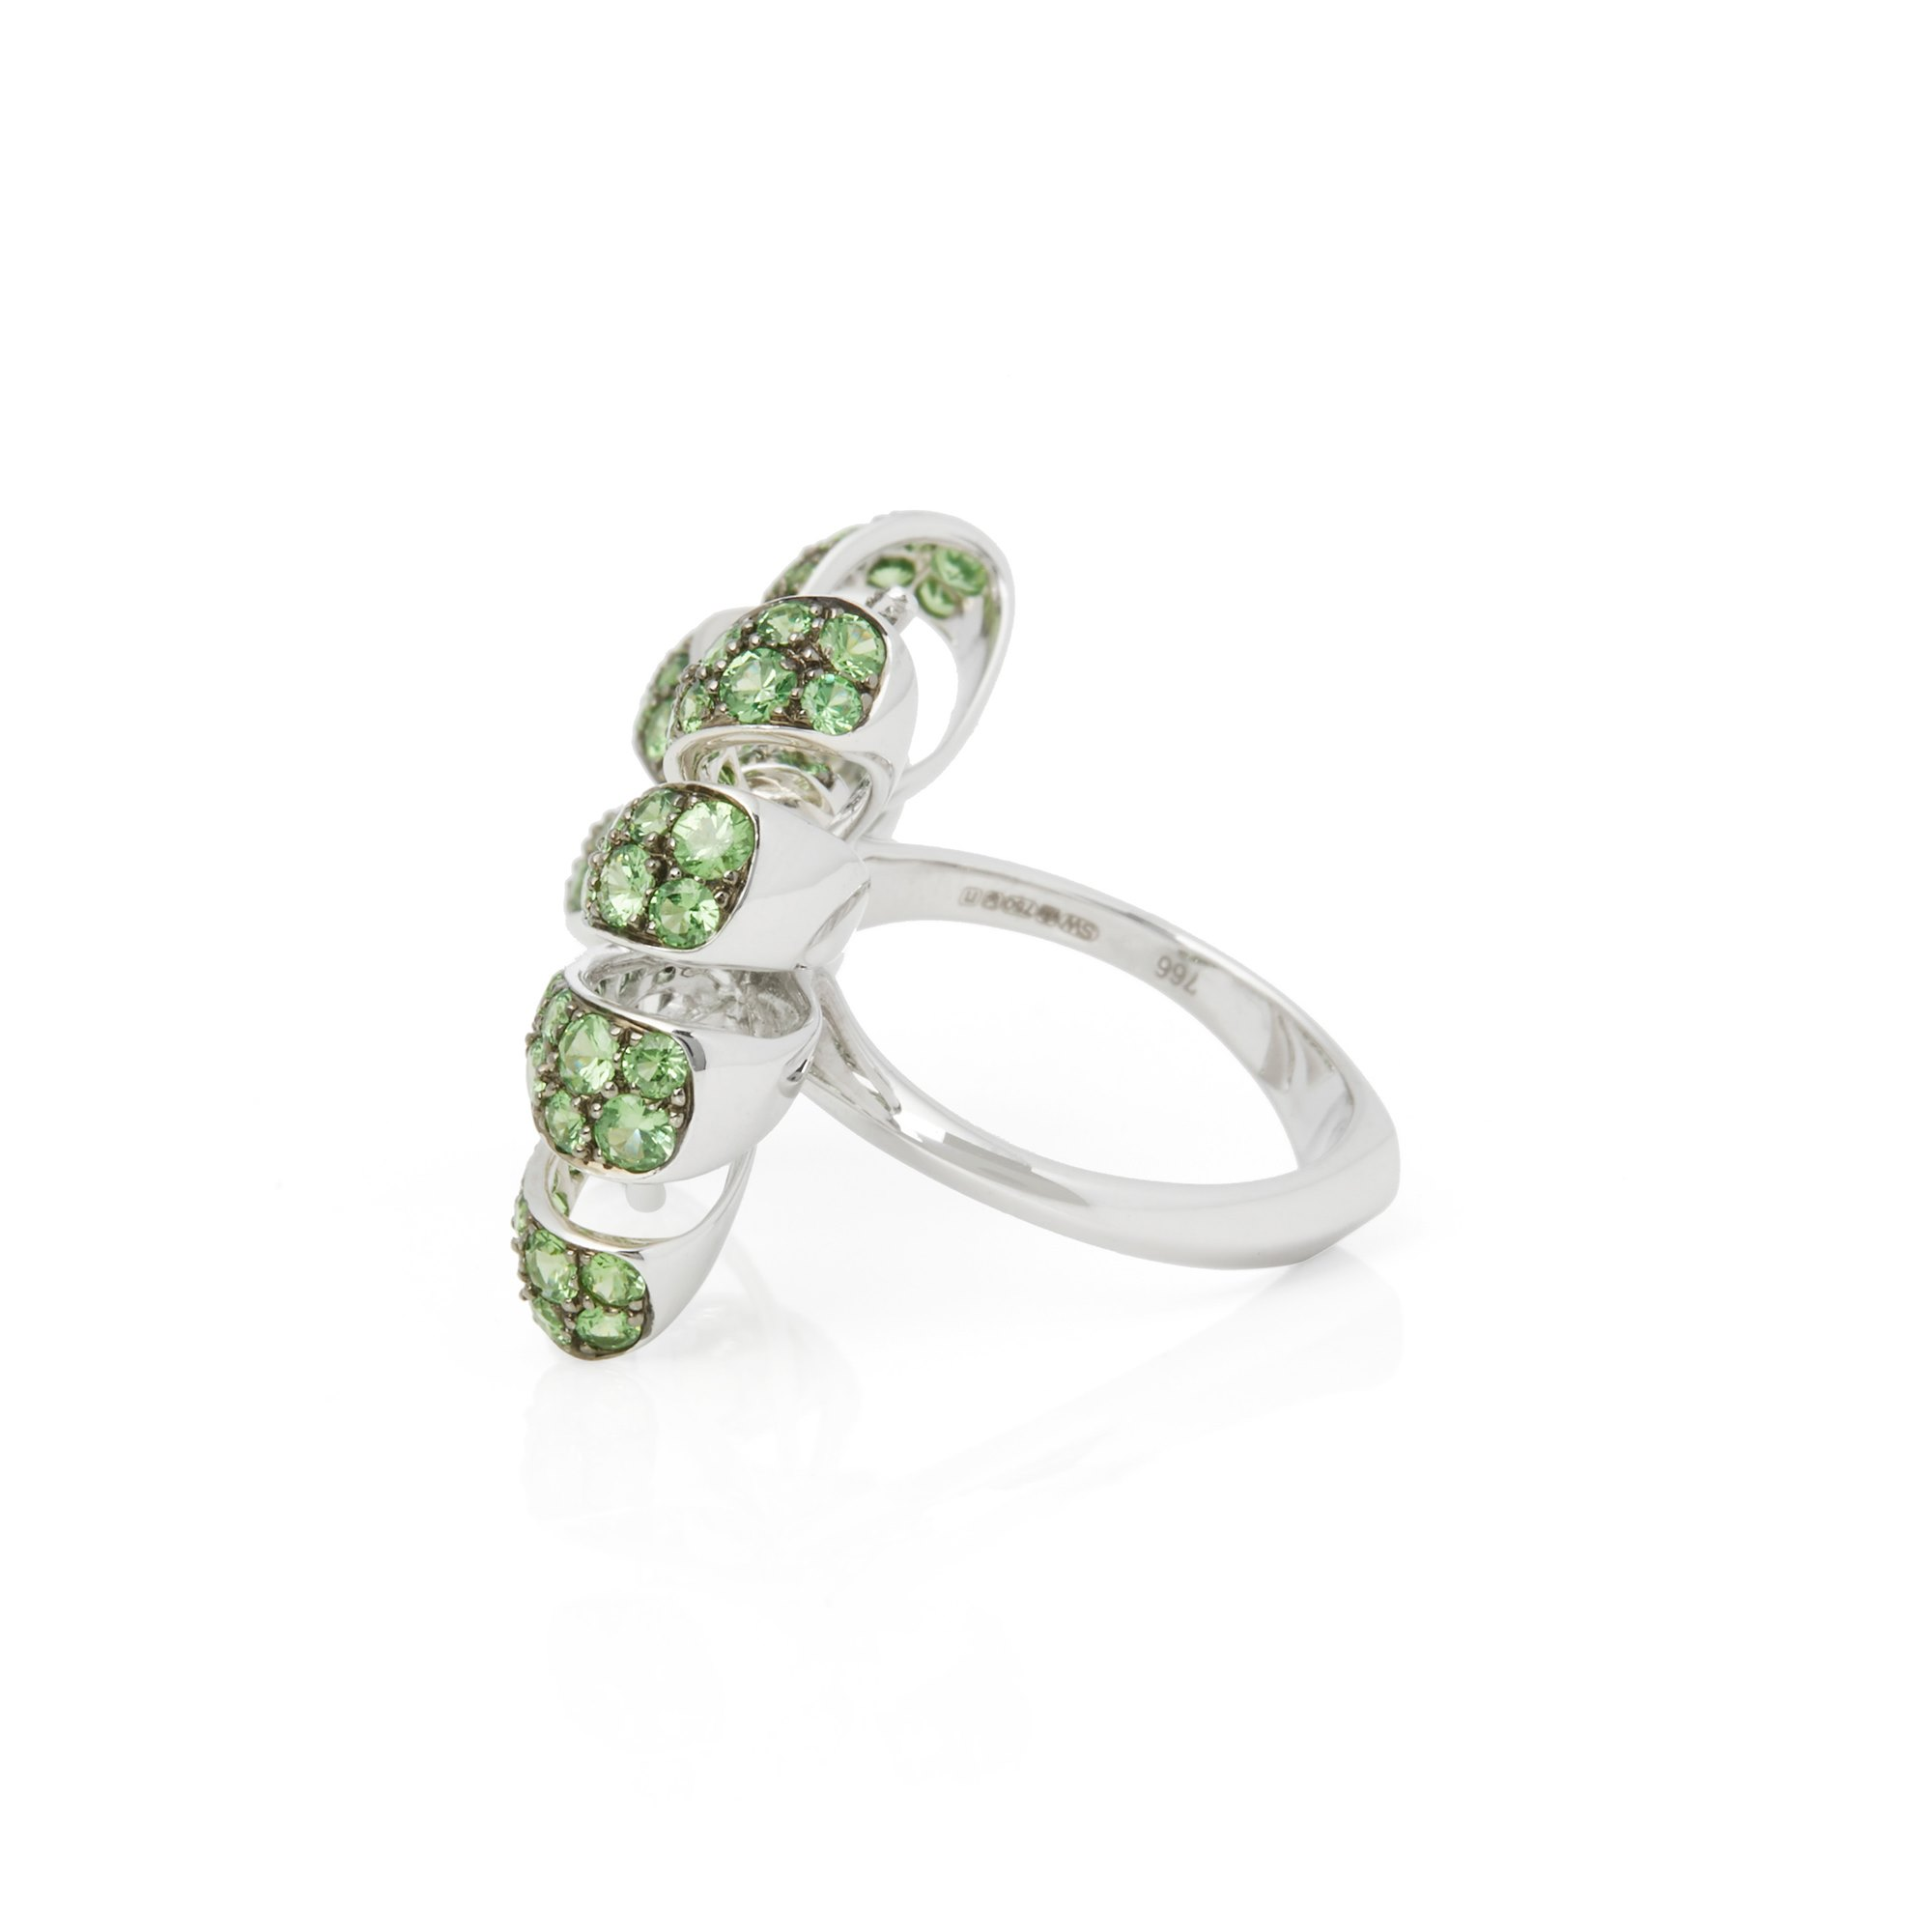 Stephen Webster Forget me Not 18ct White Gold Pave Tsavorite Bow Ring